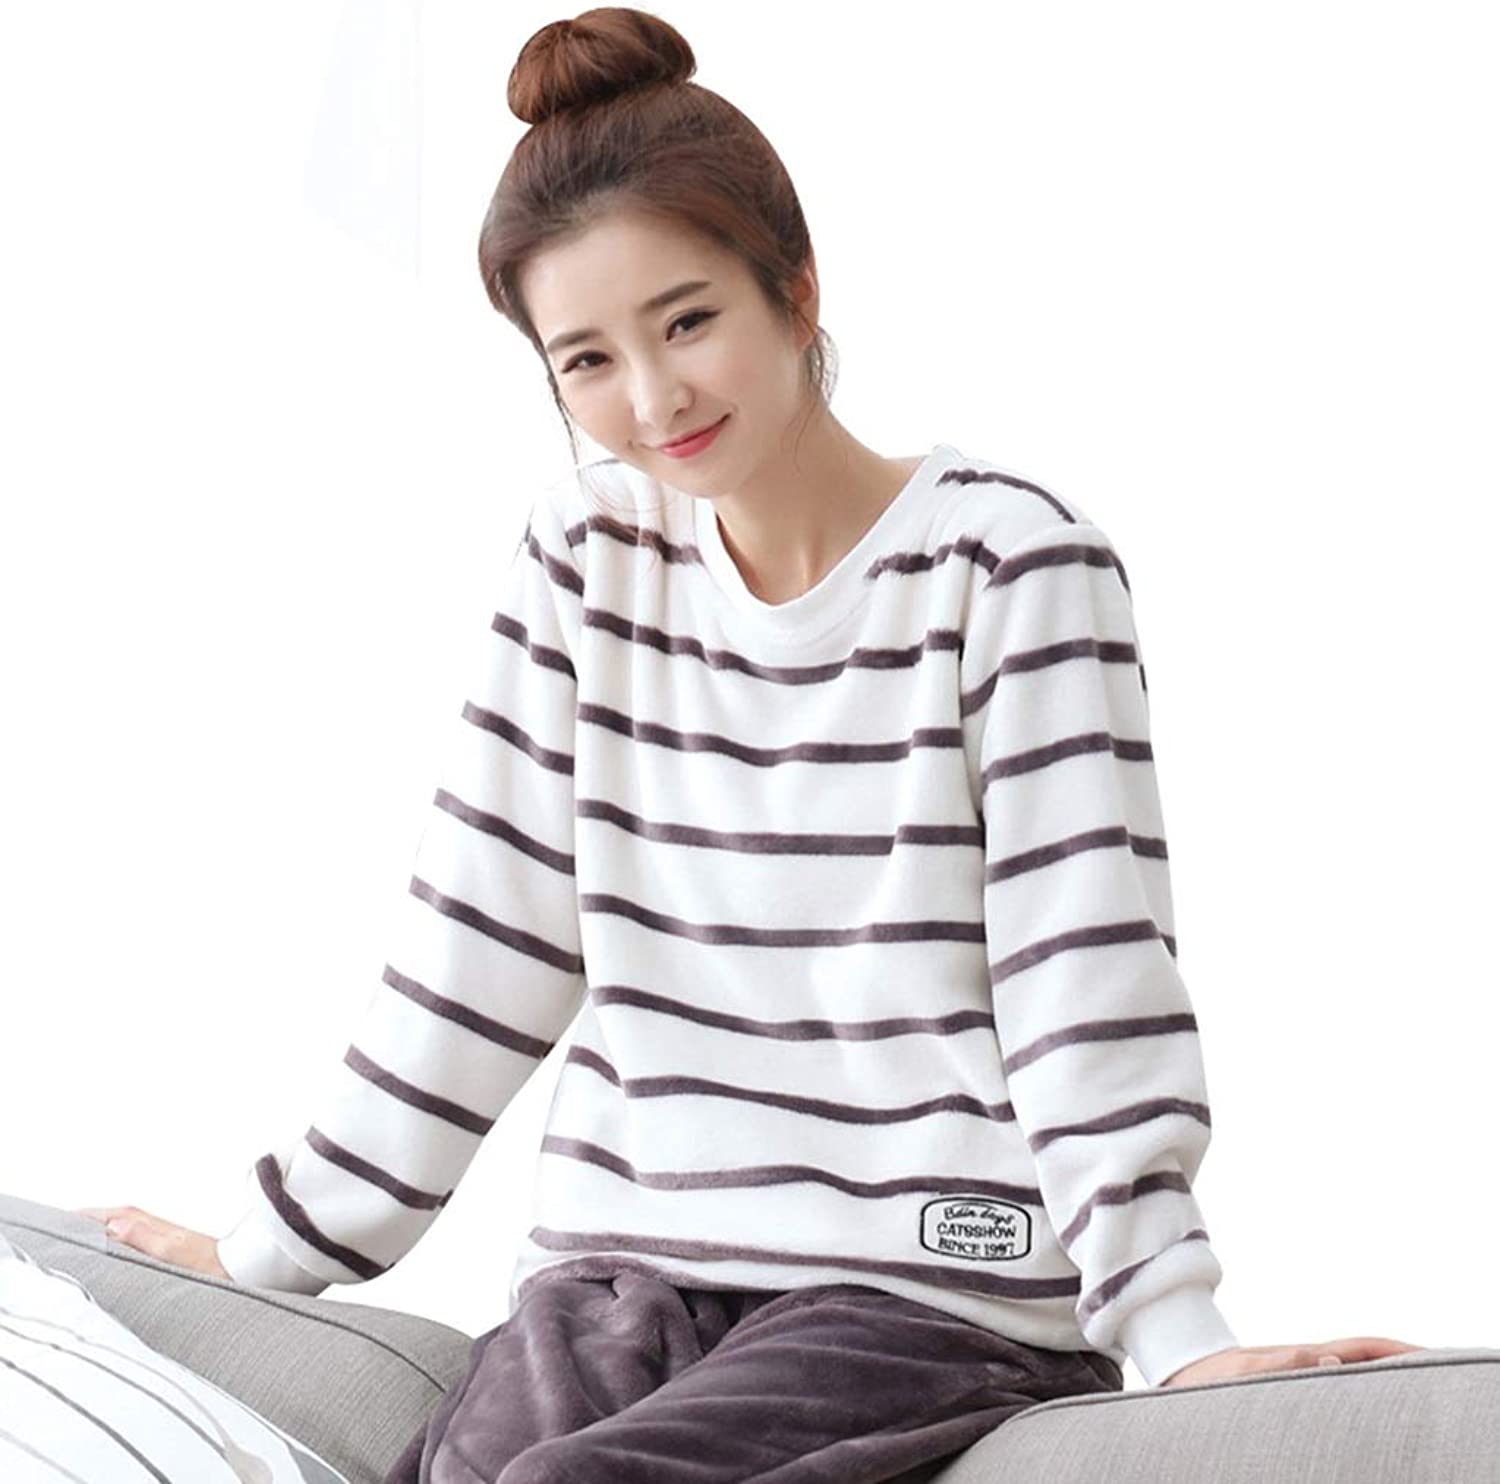 Sleepwear Stripes Nightgown Females Coral Velvet Nightwear Applicable for Autumn and Winter Round Neck Pajamas for Girls Pajama Sets (color   Multicolord, Size   XXL)